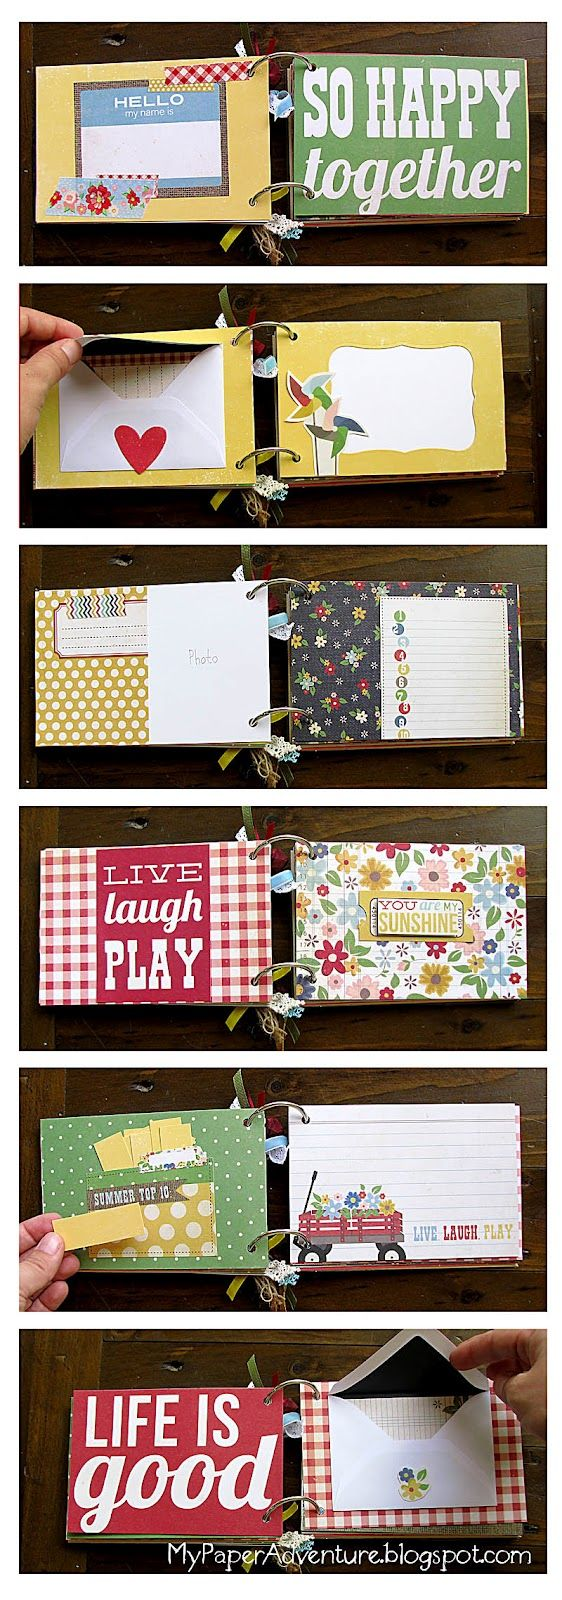 Scrapbook ideas mini books - Mini Album Using 4x6 Pics As The Actual Pages With Dividers Between